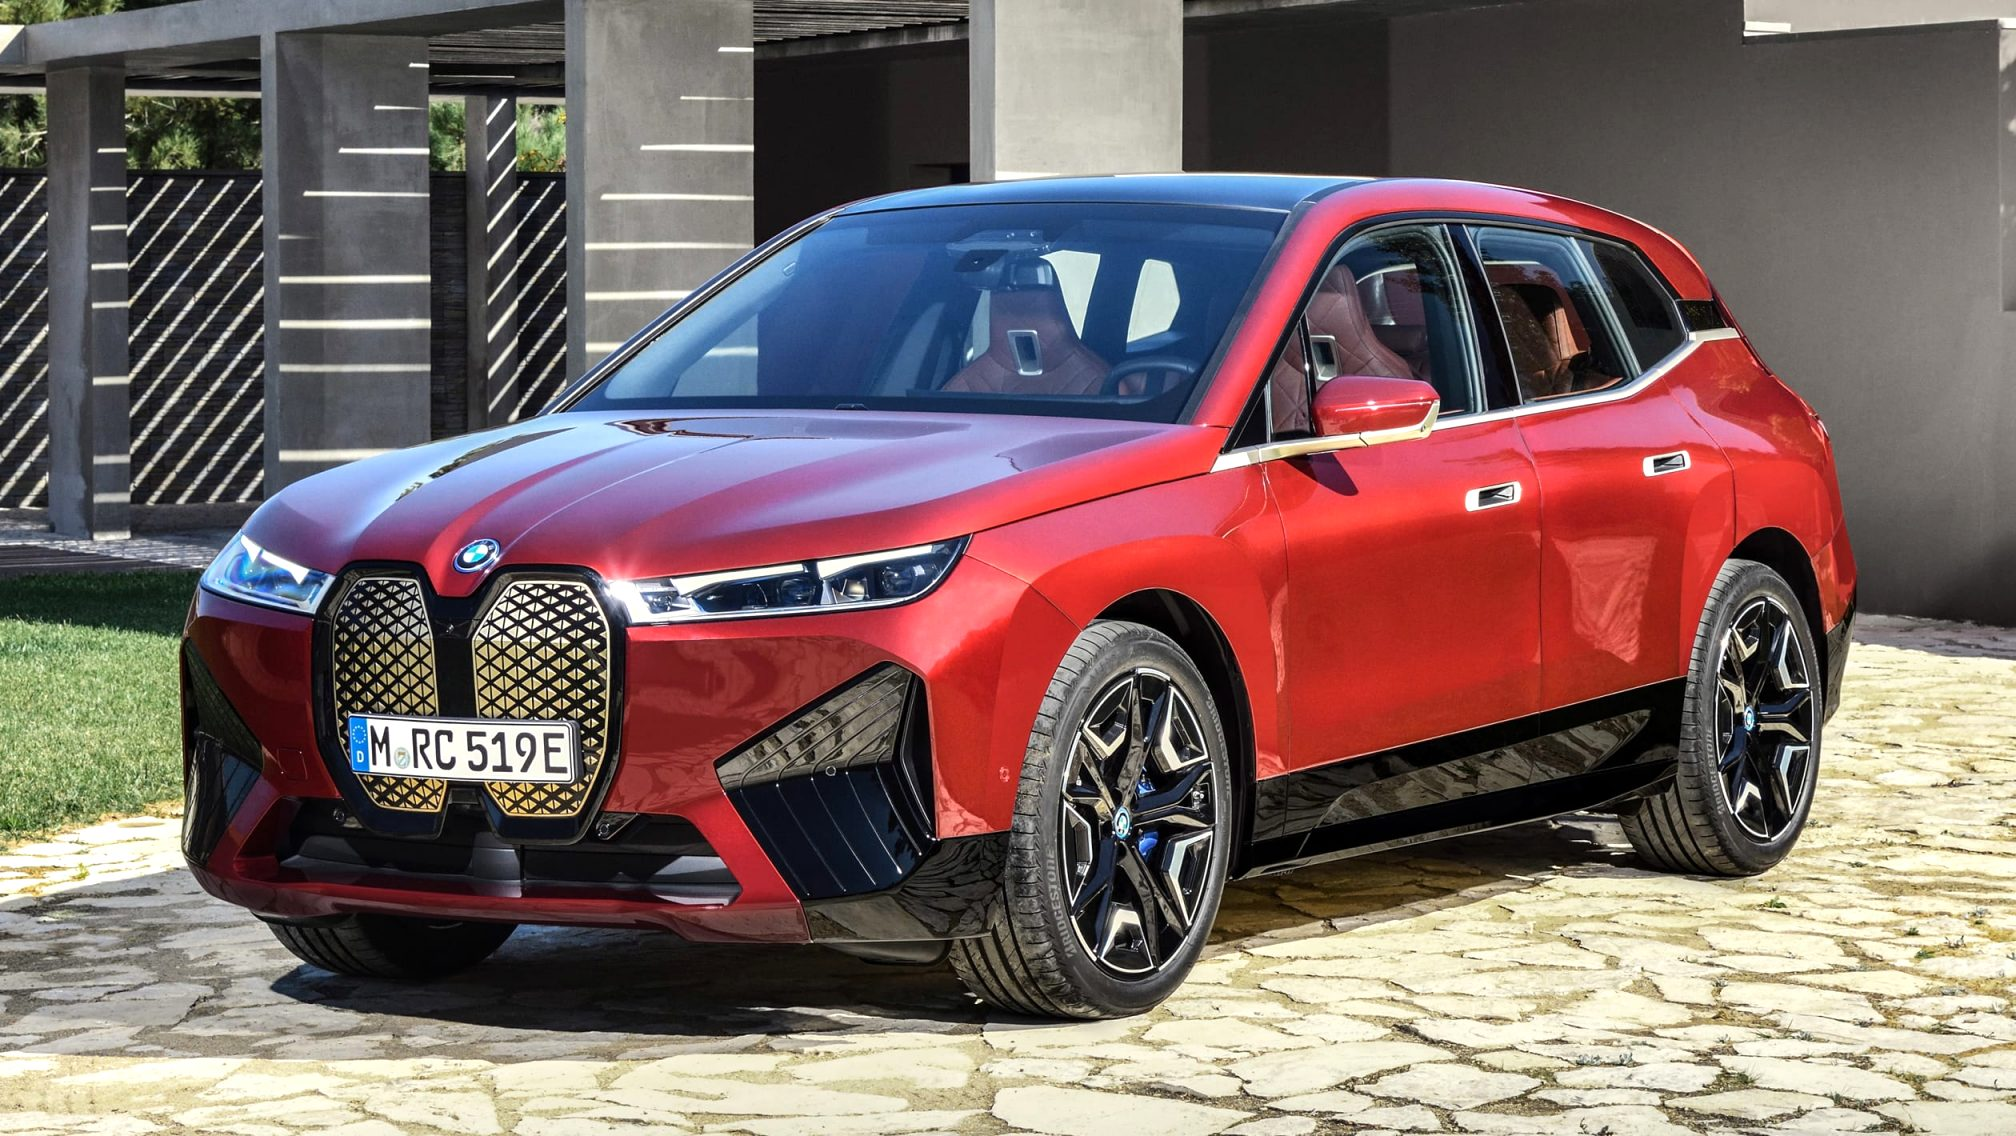 2021 BMW electric SUV Images